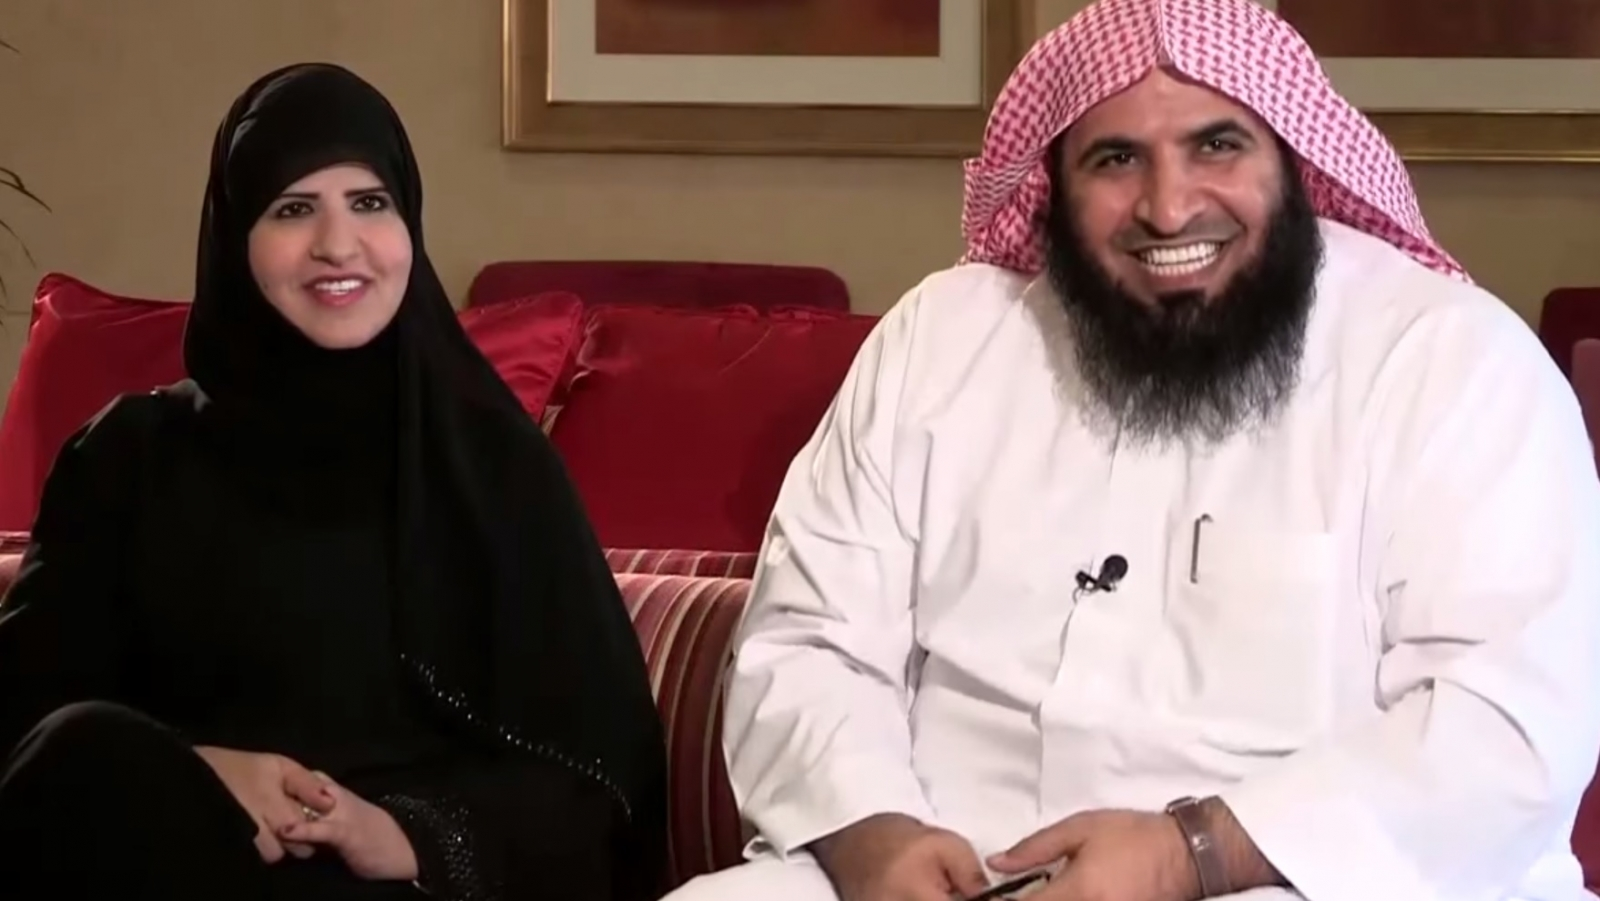 Saudi cleric Sheikh Ahmad al-Ghamedi's wife face uncovered TV